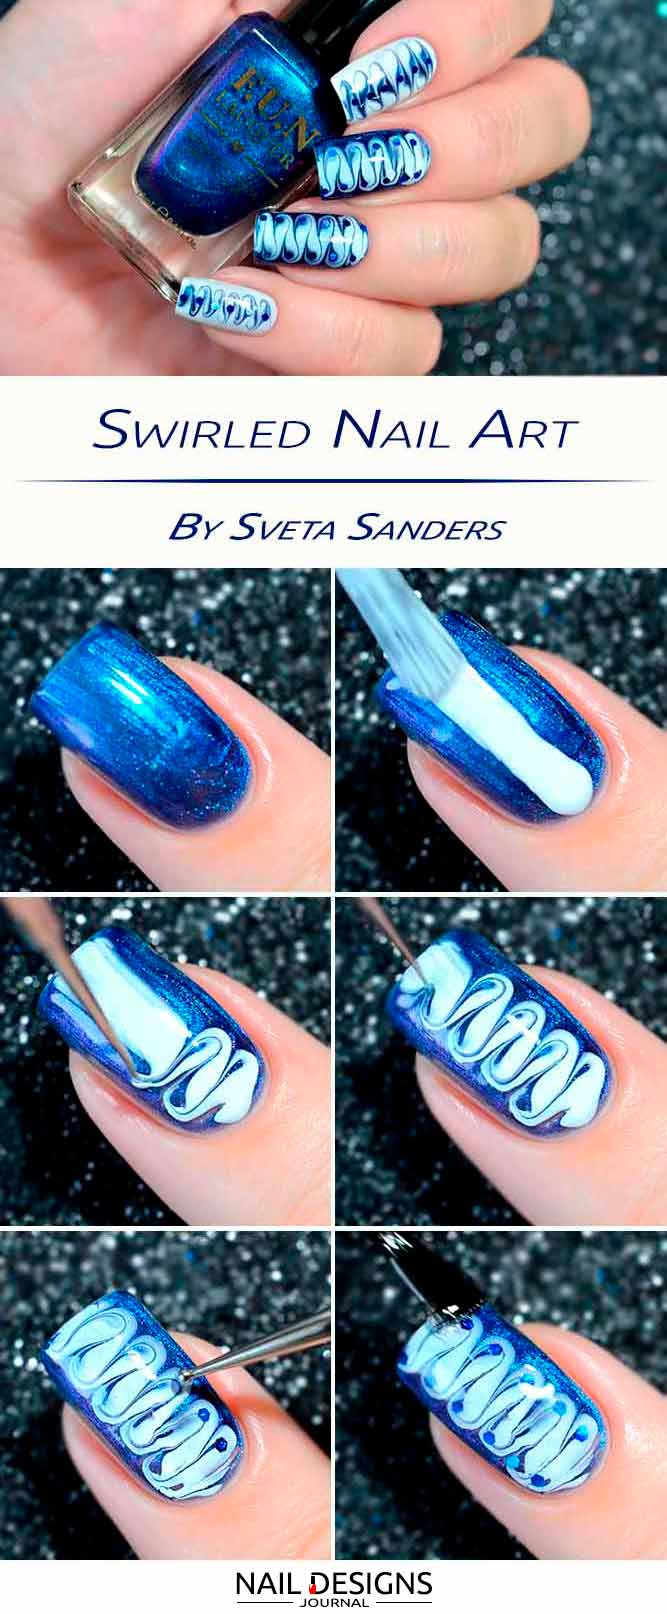 25 Beautiful And Simple Nail Designs | NailDesignsJournal.com